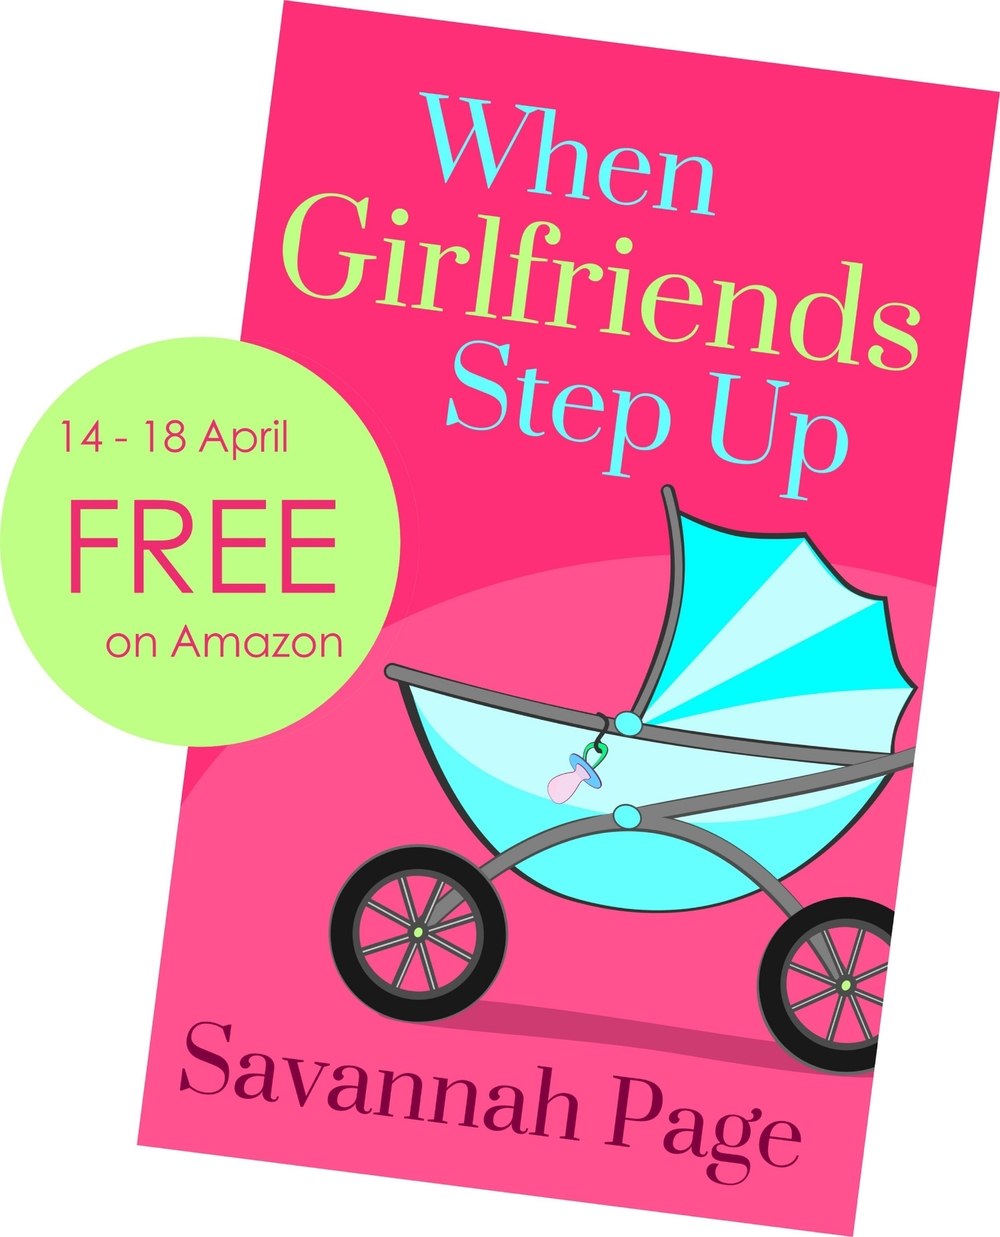 FREE PROMO IMAGE When Girlfriends Step Up by Savannah Page